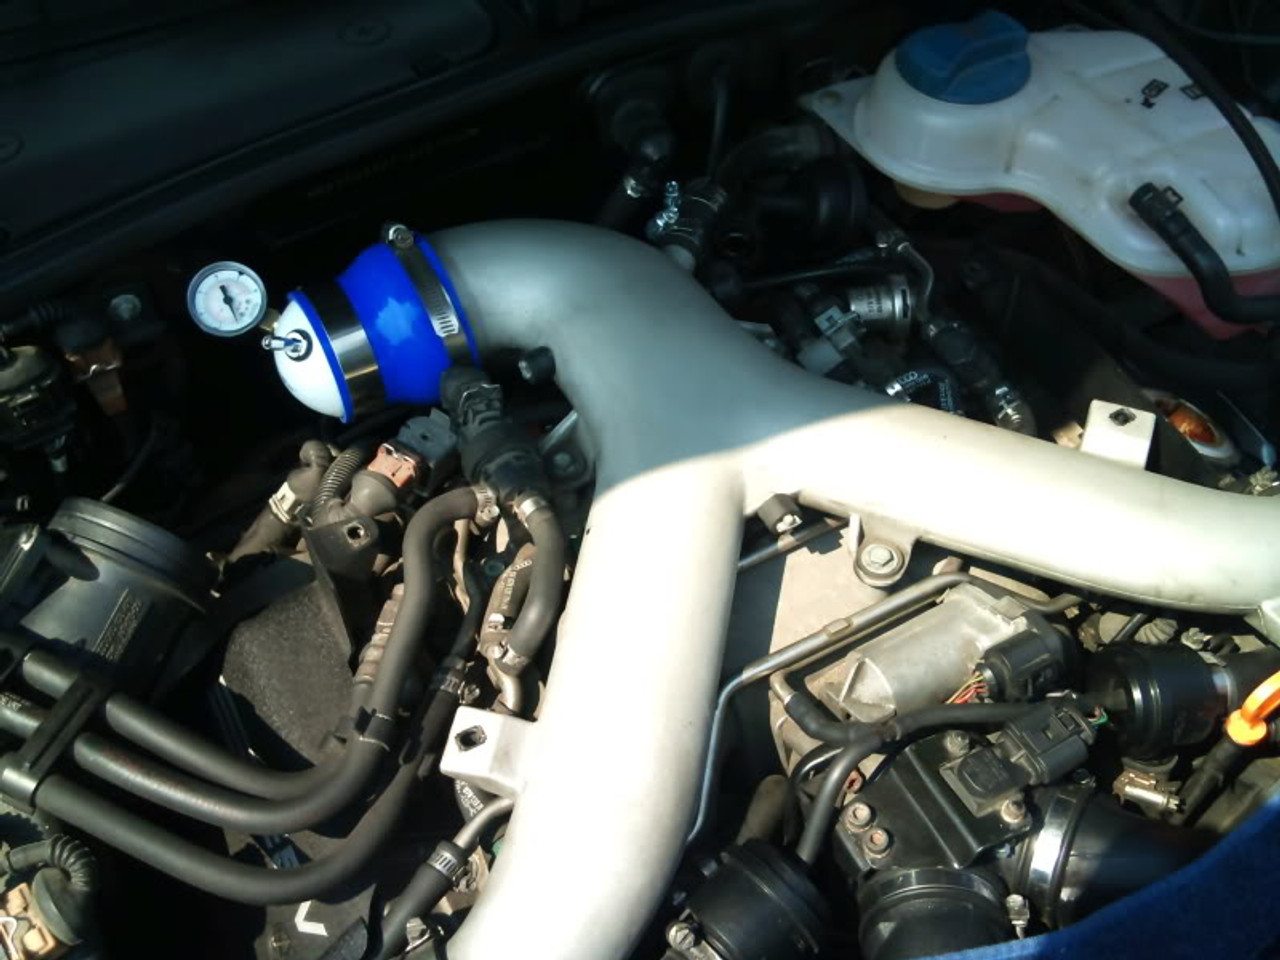 Attach boost leak tester at the y-pipe inlet as shown.